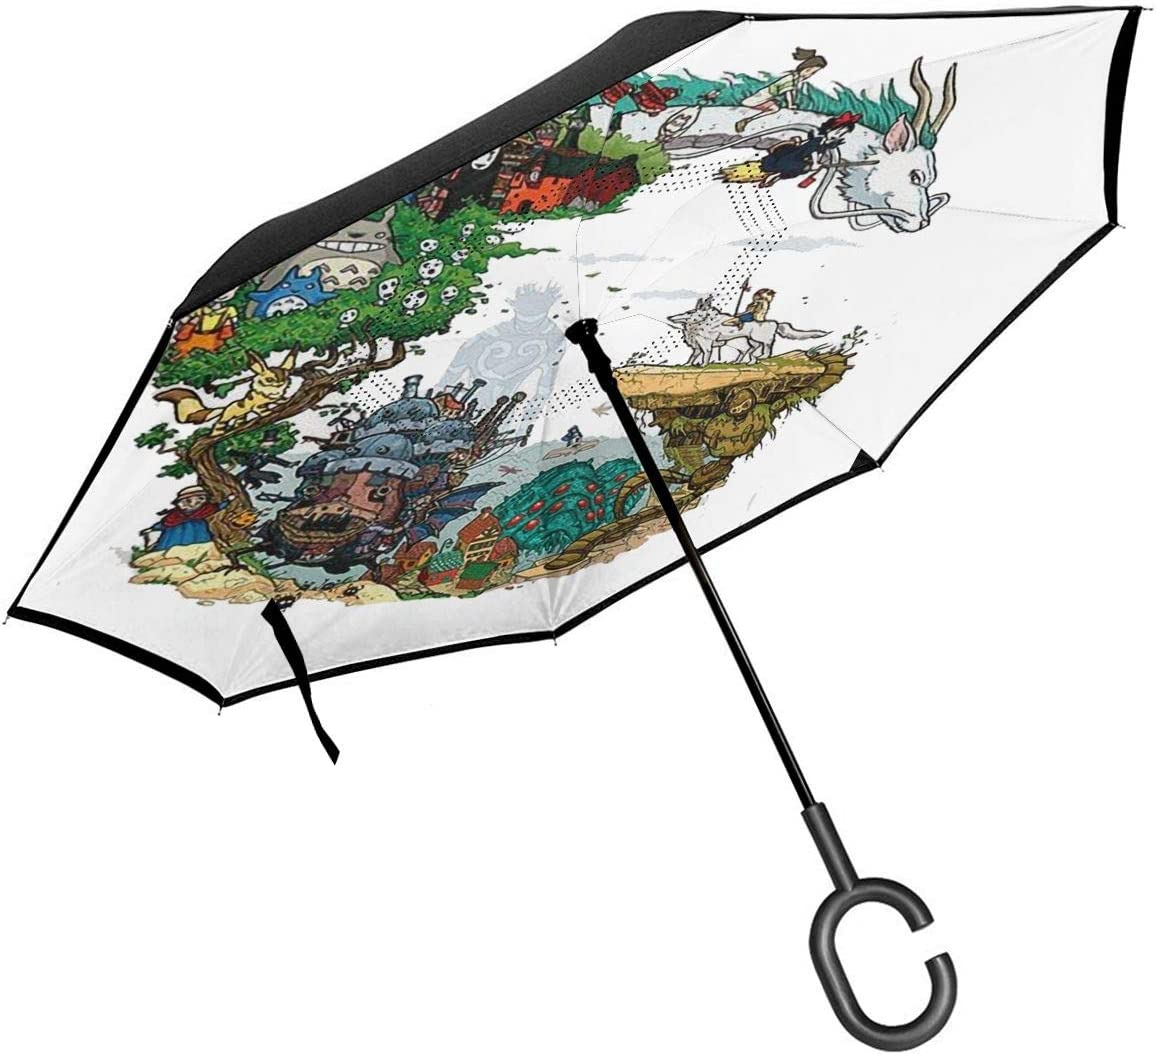 Car Reverse Folding Umbrella Windproof UV Protection with C-Shaped Handle Inverted Umbrella with Psychedelic Cat Aesthetic Hipster Print